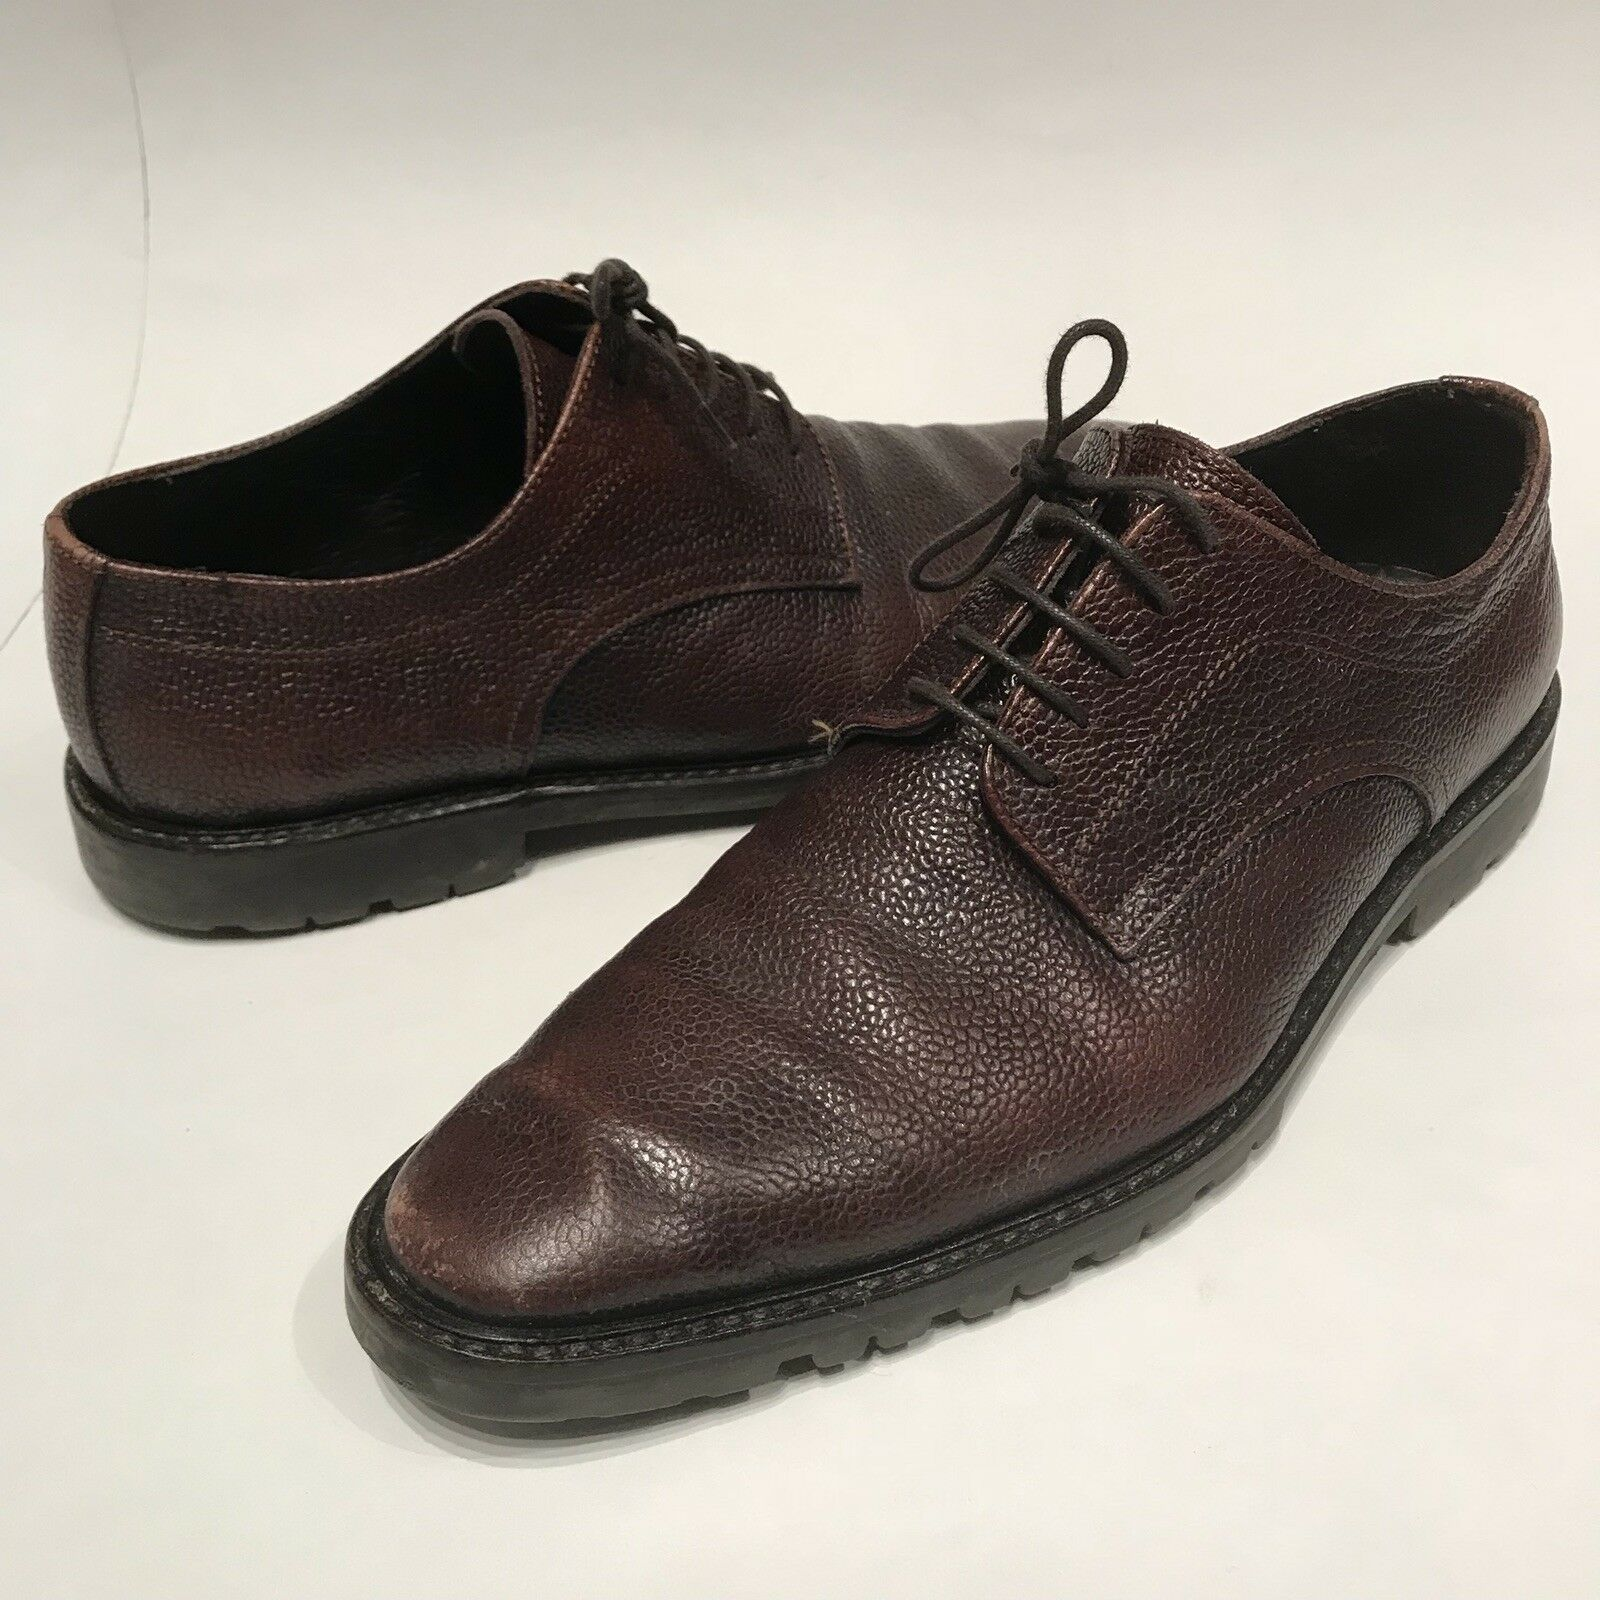 TO Stiefel NEW YORK ADAM DERRICK braun Leather Lace Up Lug Sole Oxford  US 9.5